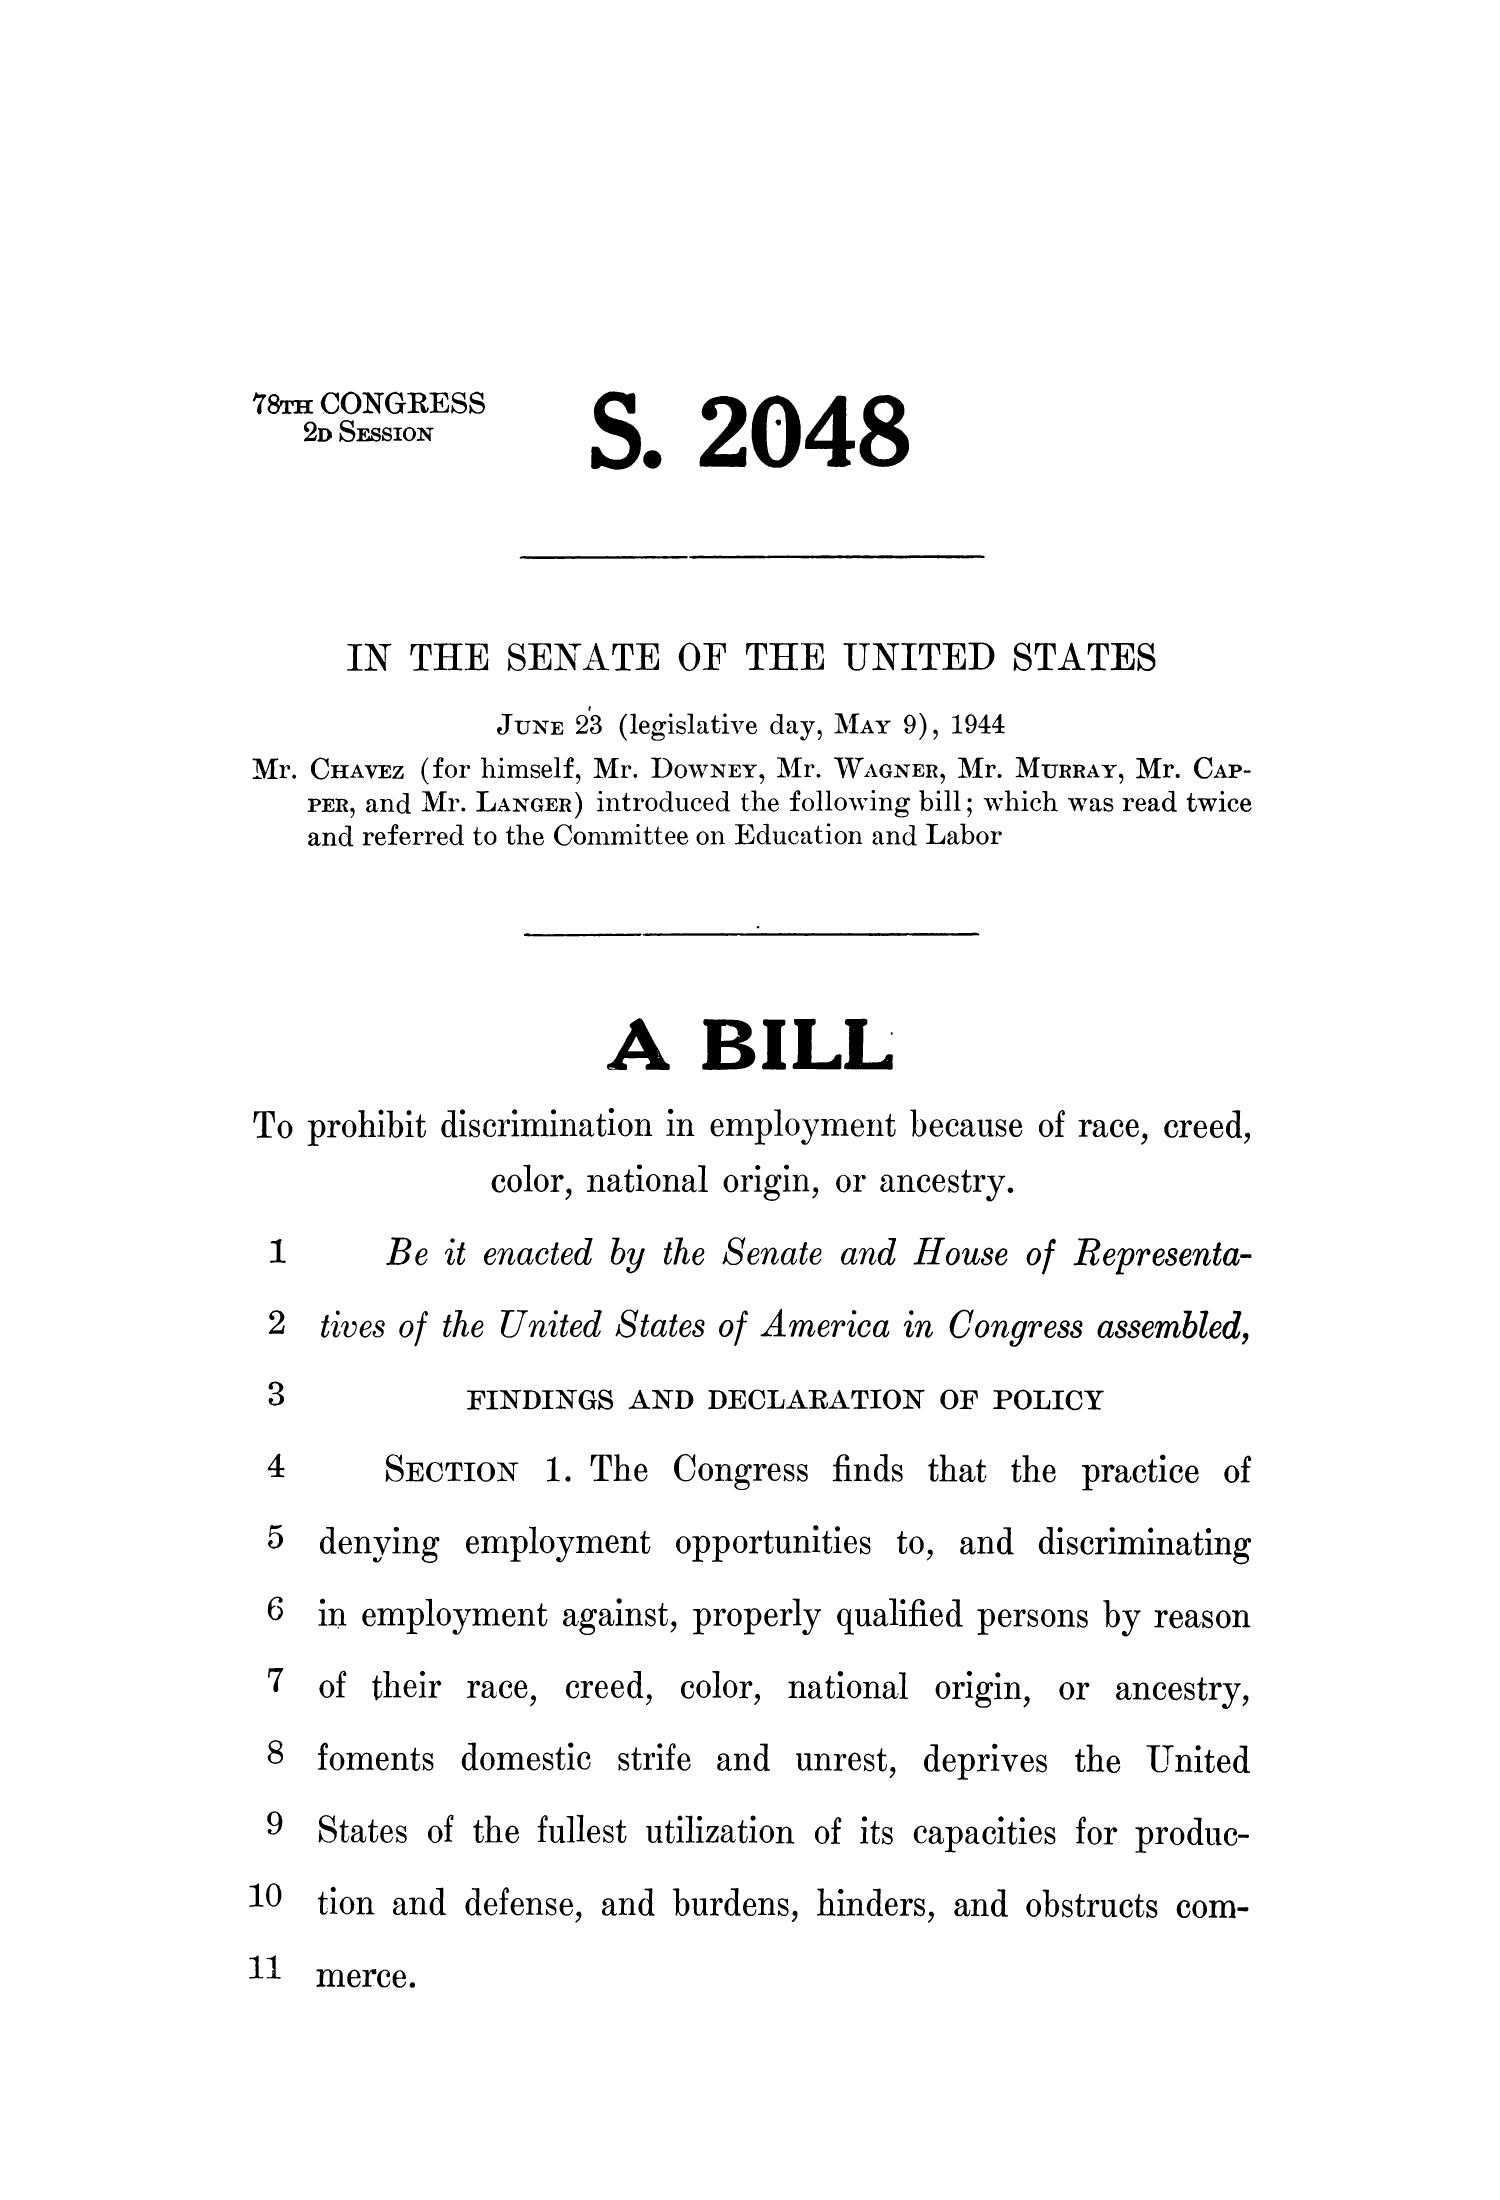 how to write a bill for congress Perfect for acing essays, tests, and quizzes, as well as for writing lesson plans   most bills that congress considers are public bills, meaning that they affect the.